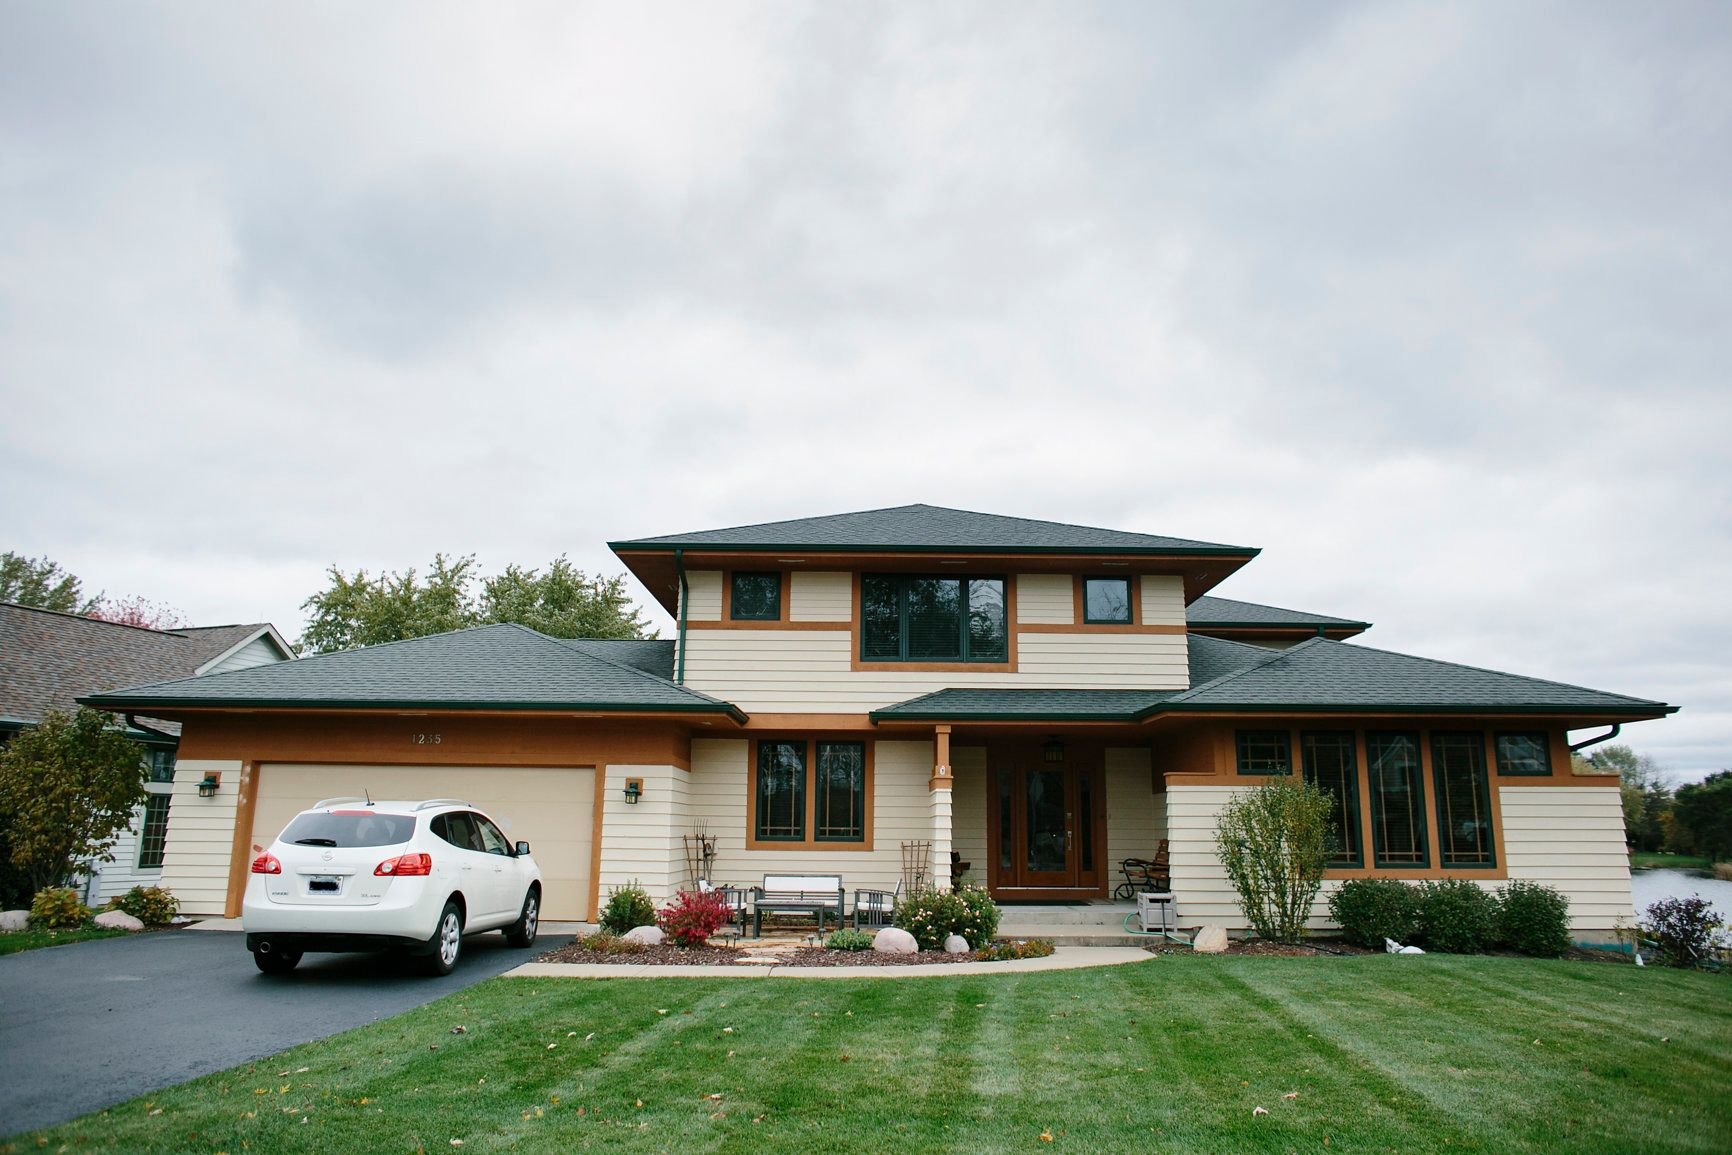 1235 N Deer Ave, Palatine, IL 60067 - Recently Sold | Trulia